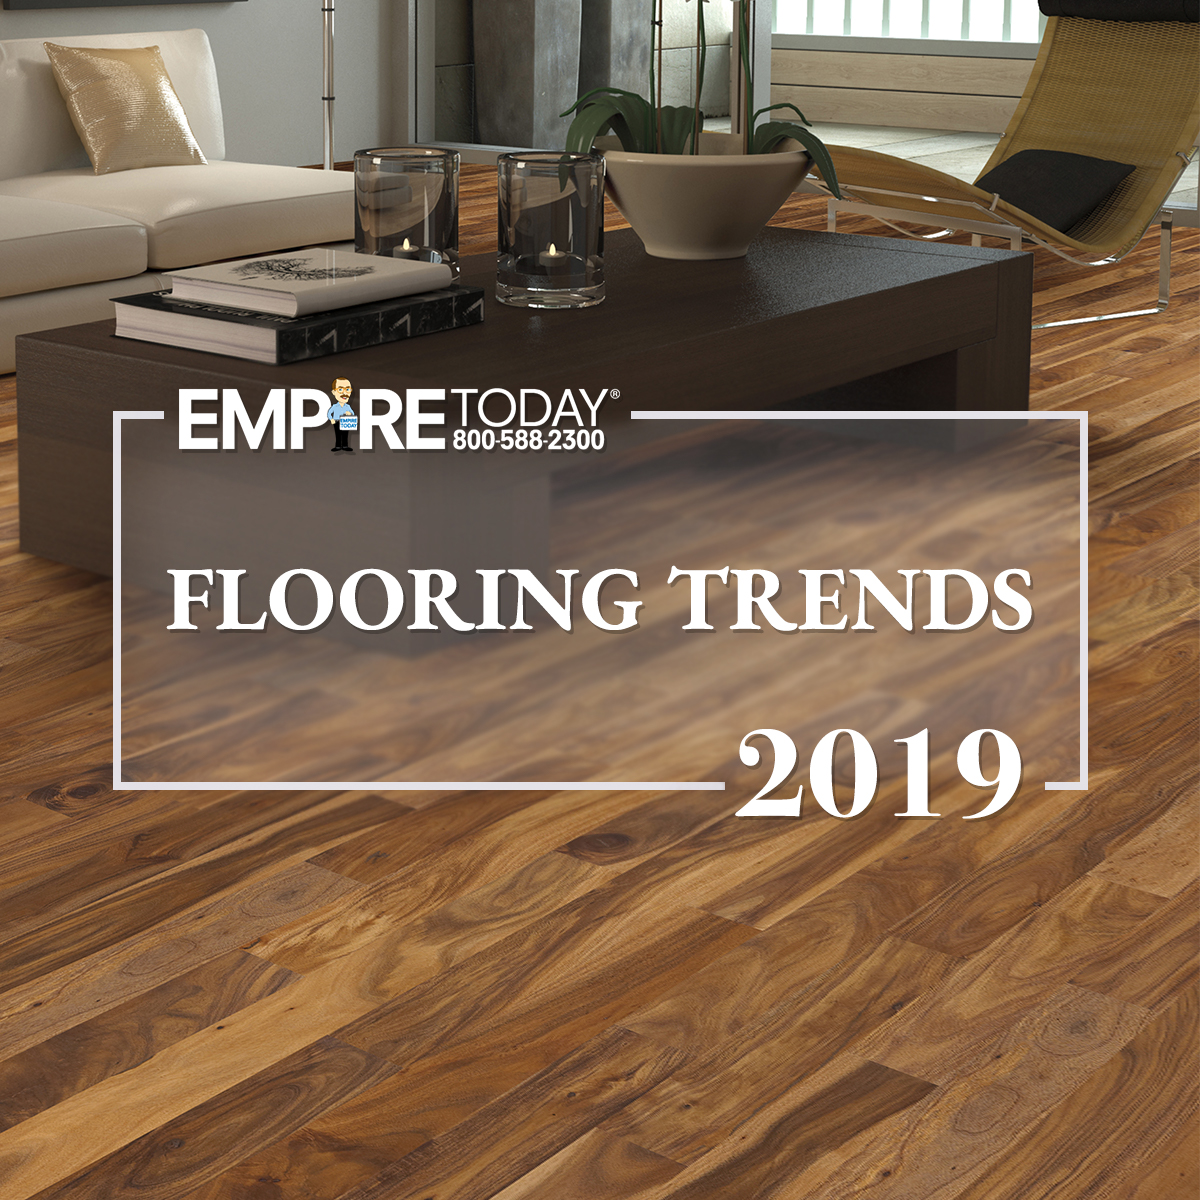 The Flooring Girl 2019 Trends: 2019 Flooring Trends: What To Expect From The New Year